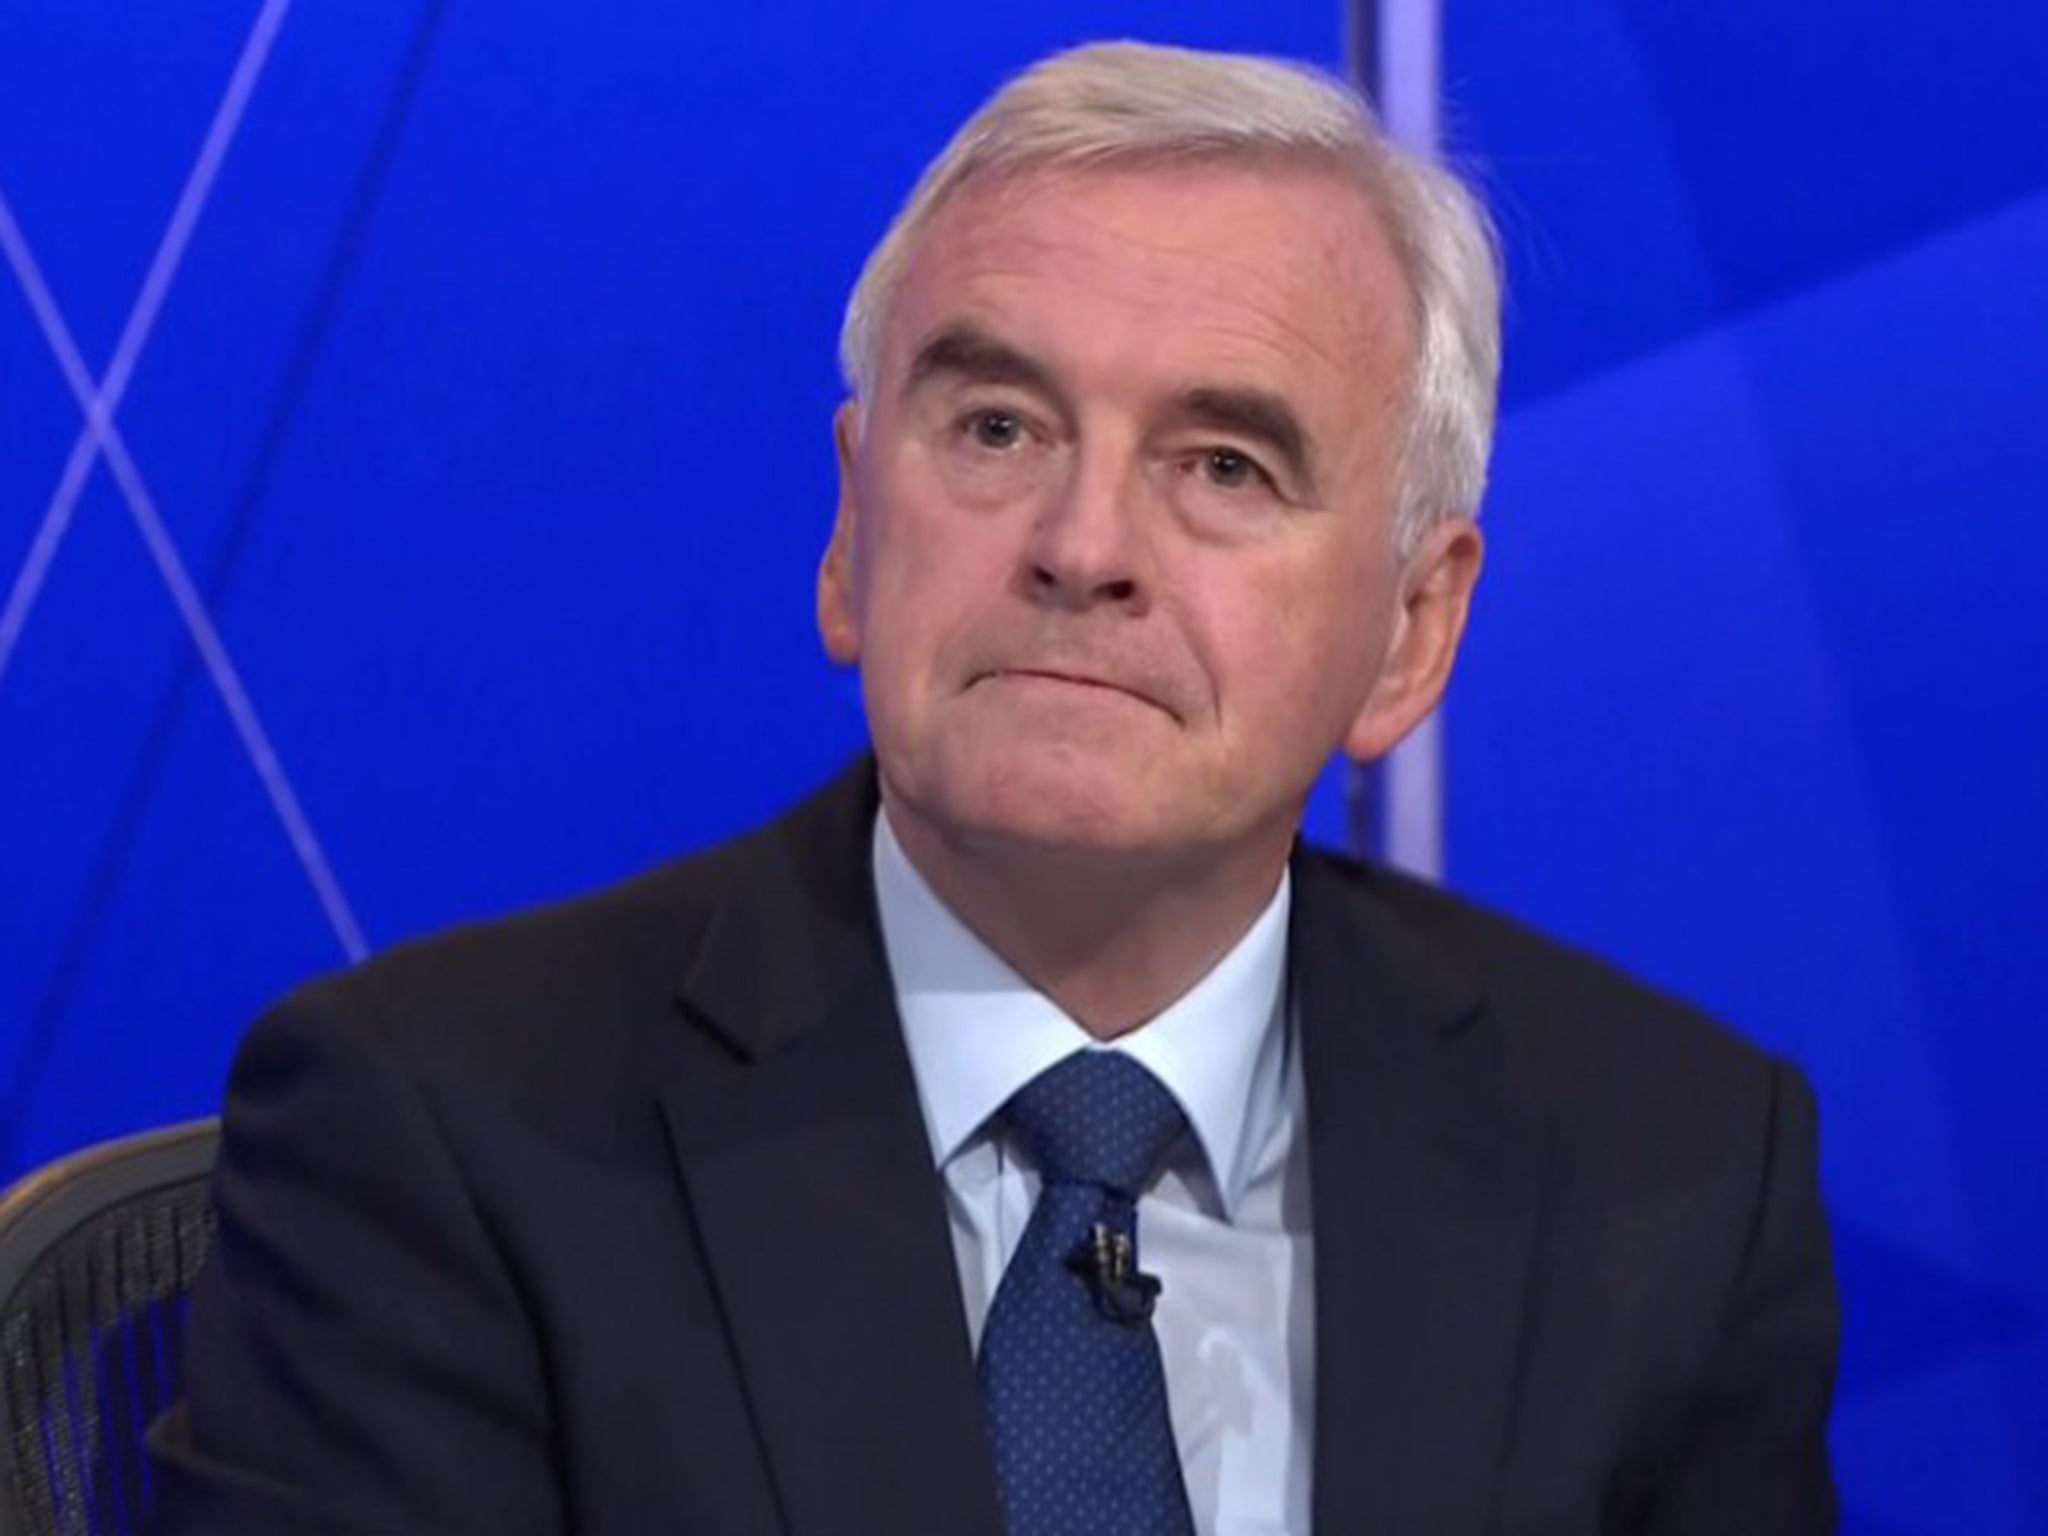 <b>John McDonnell</b>: Shadow Chancellor apologises for praising IRA and joke about ... - web-john-mcdonnell-BBC